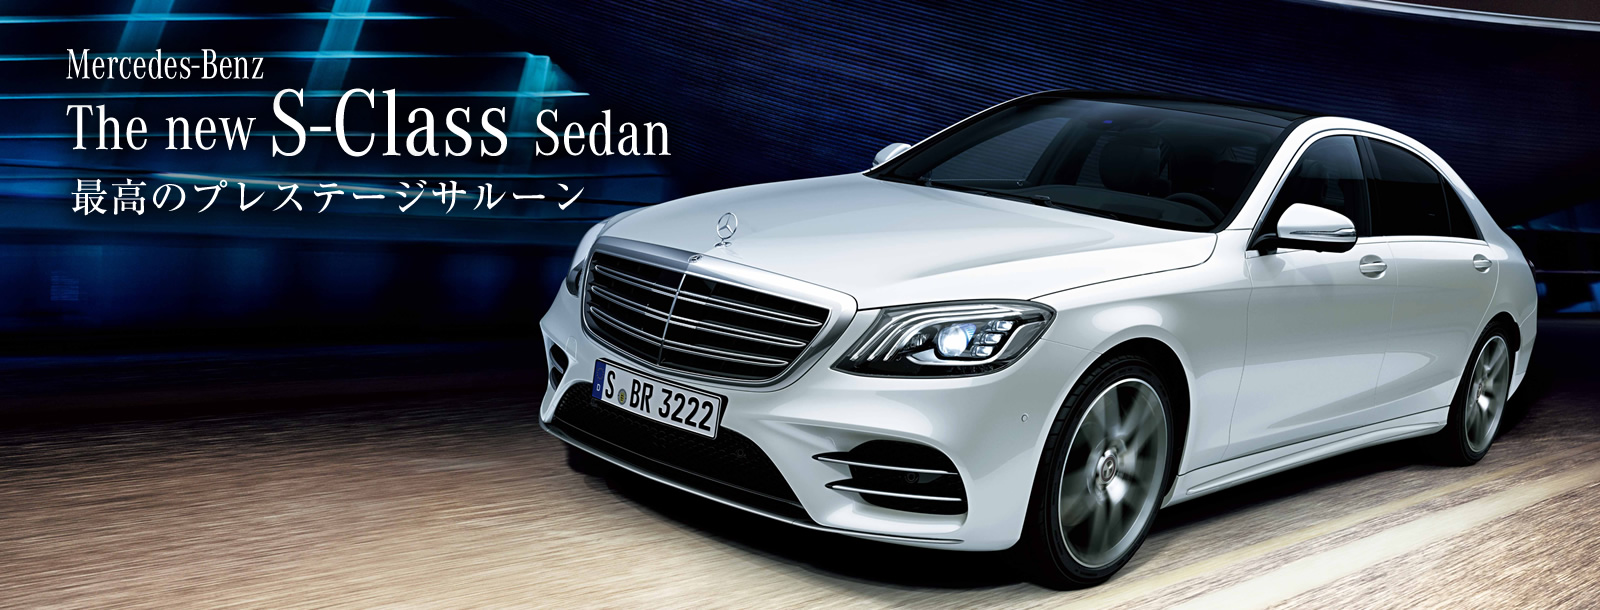 Mercedes-Benz The new S-Class